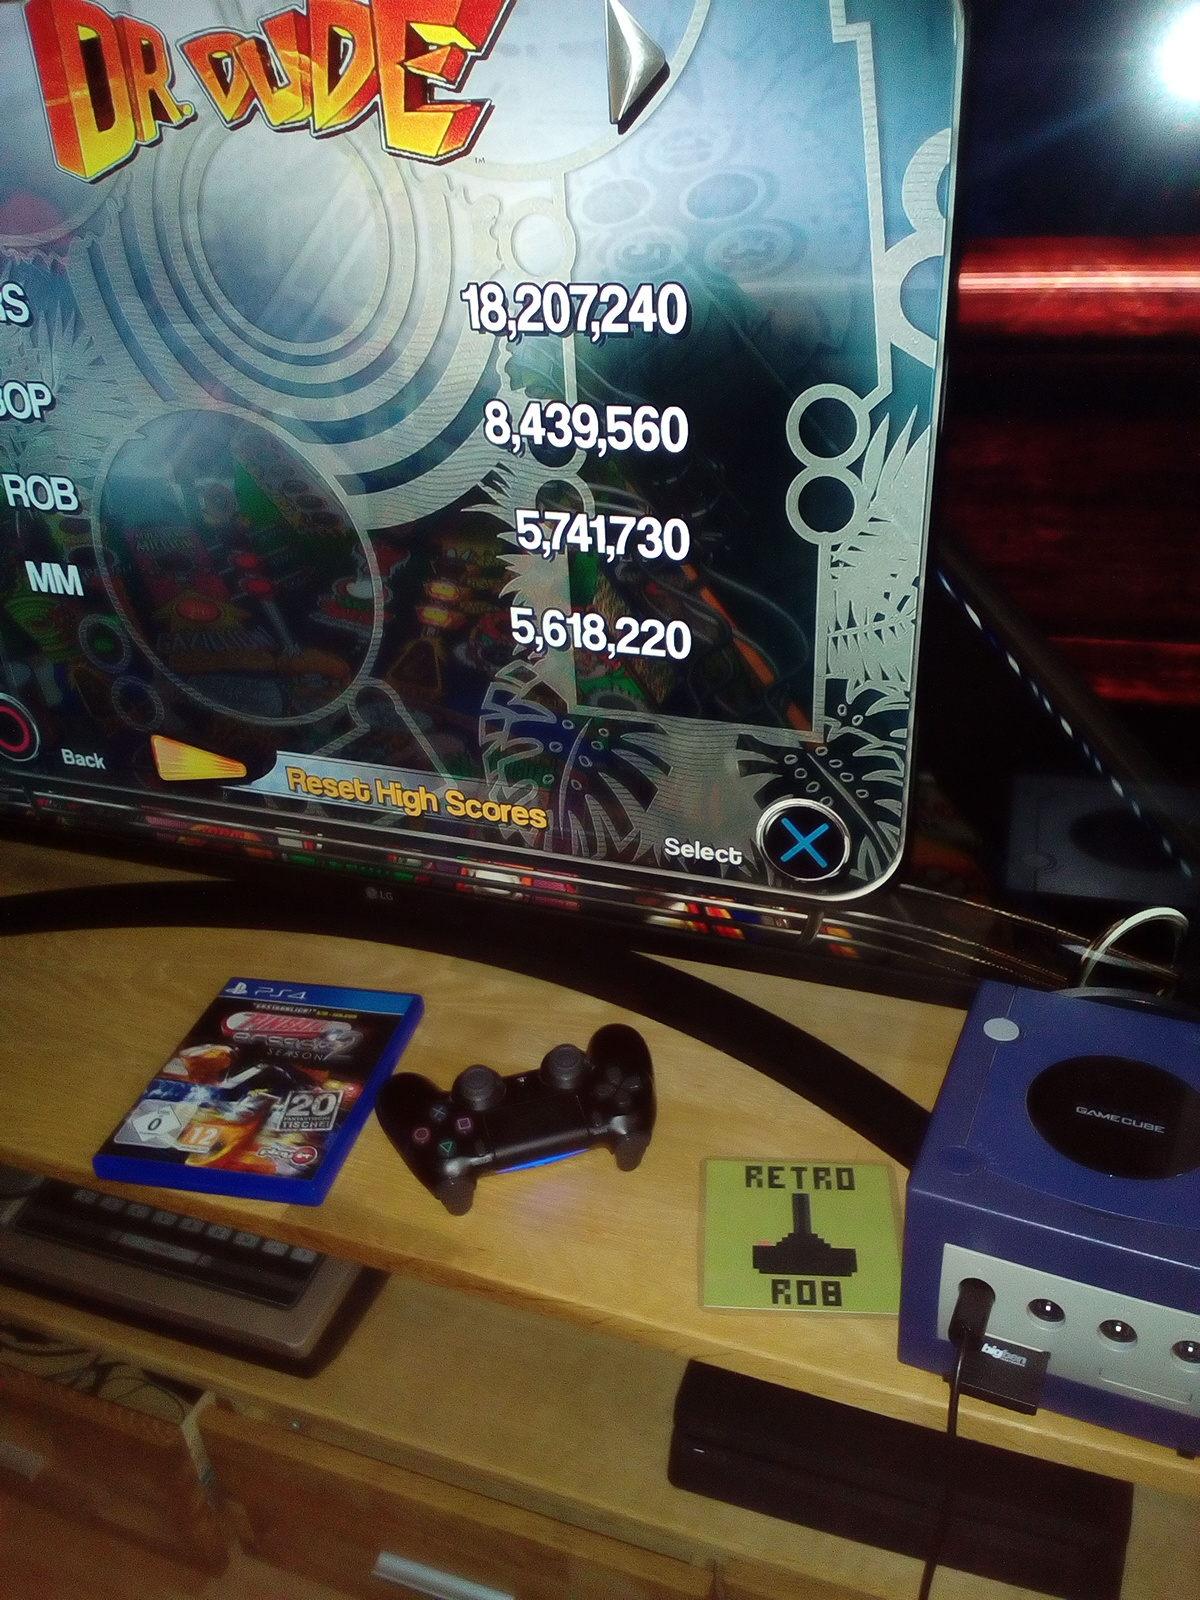 RetroRob: Pinball Arcade: Dr. Dude (Playstation 4) 5,741,730 points on 2021-03-16 15:20:39